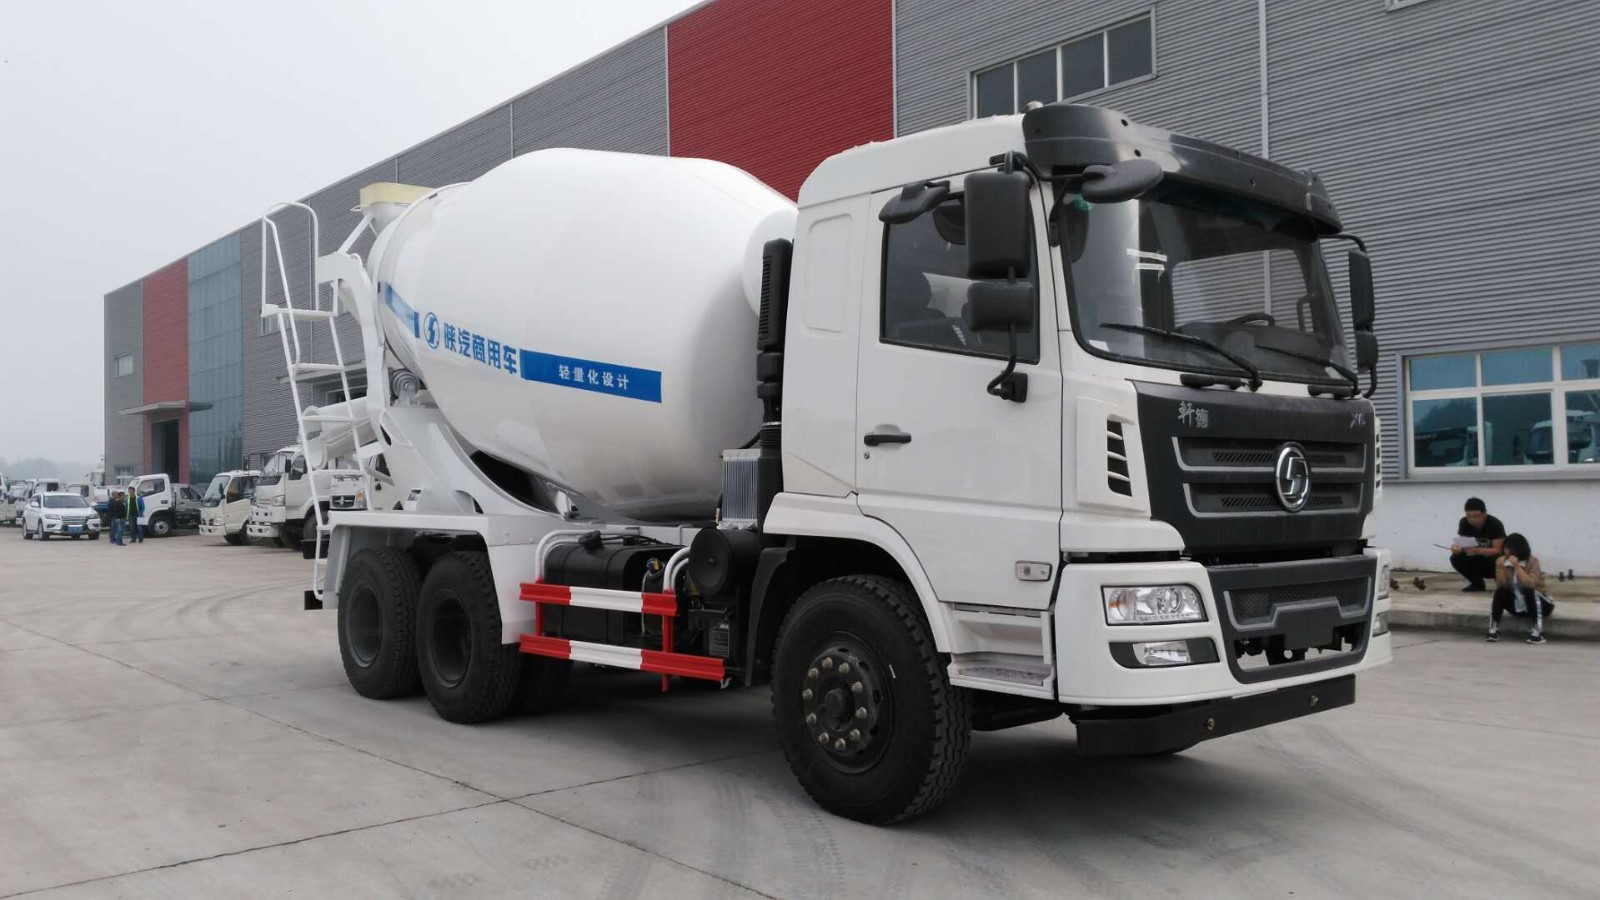 Used 10m3 SHACMAN Concrete Mixer Truck